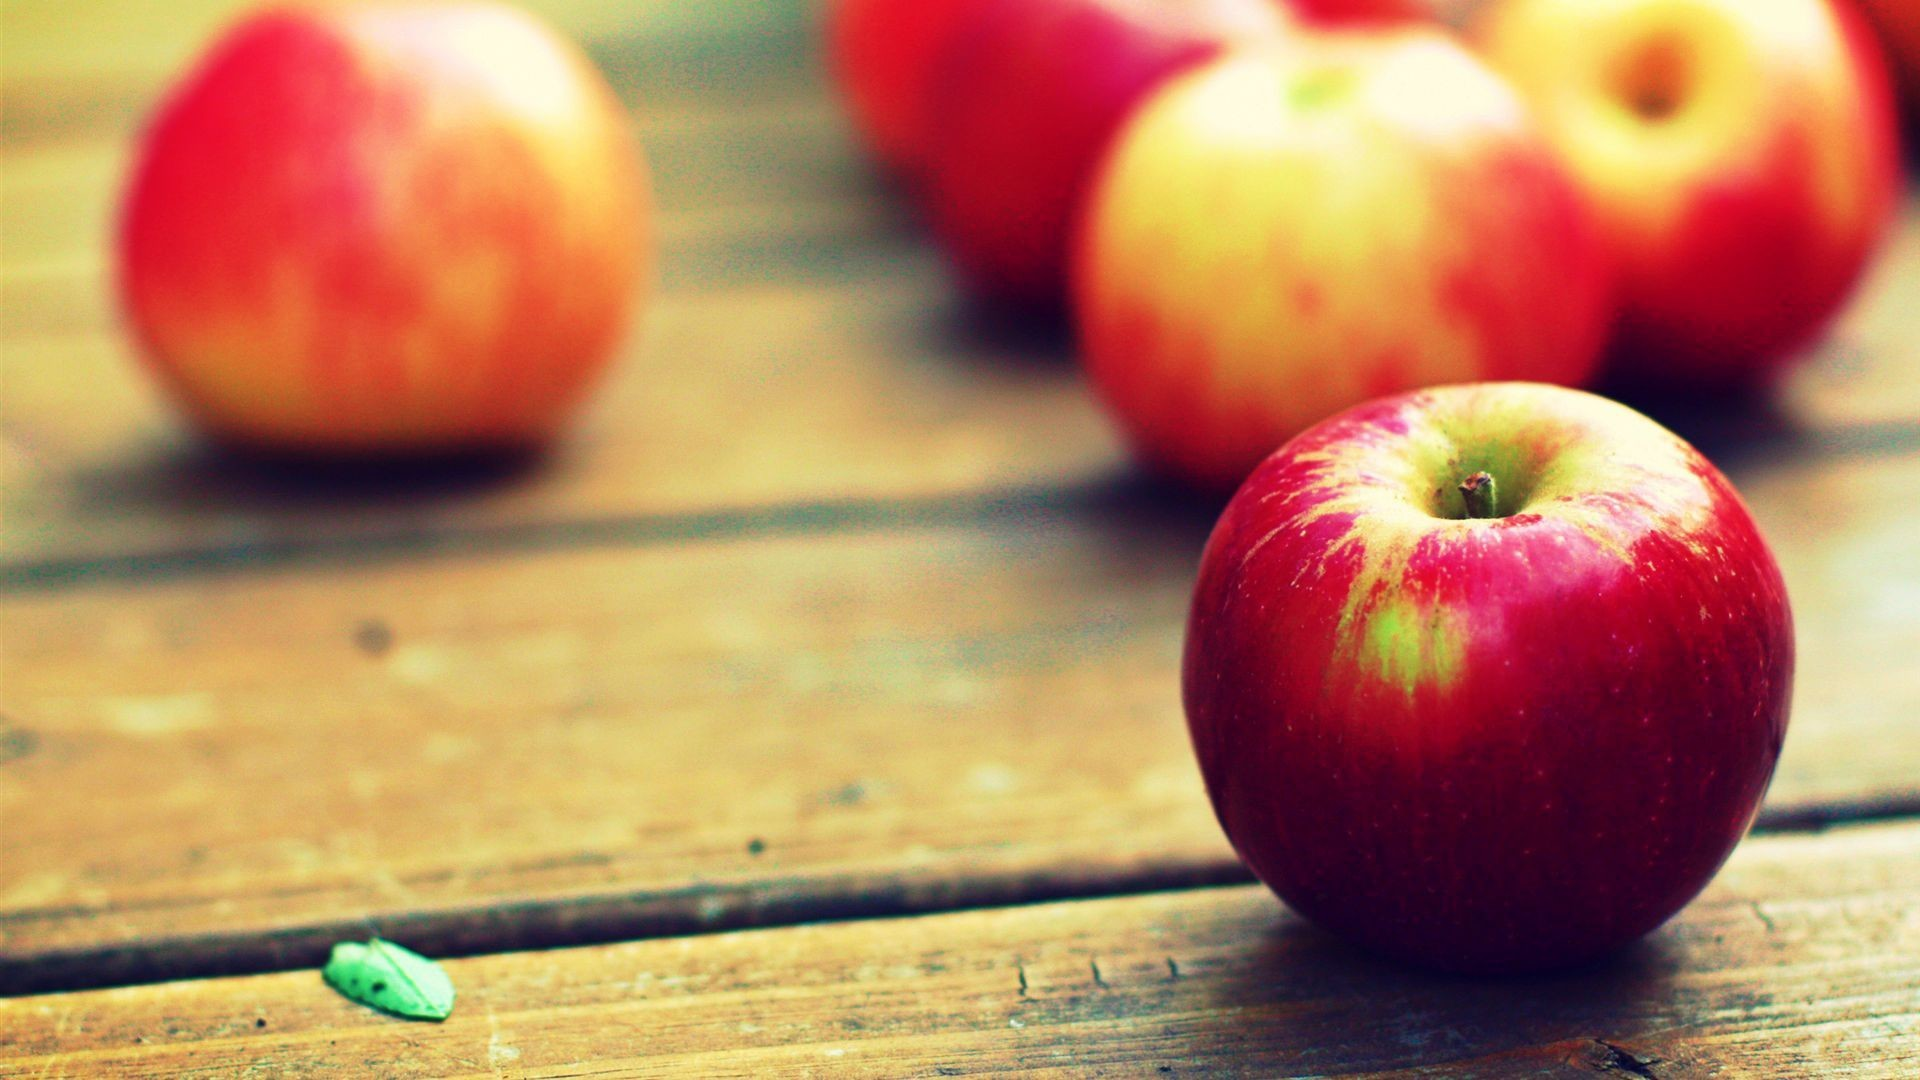 Res: 1920x1080, Apple Fruit Wallpapers 8